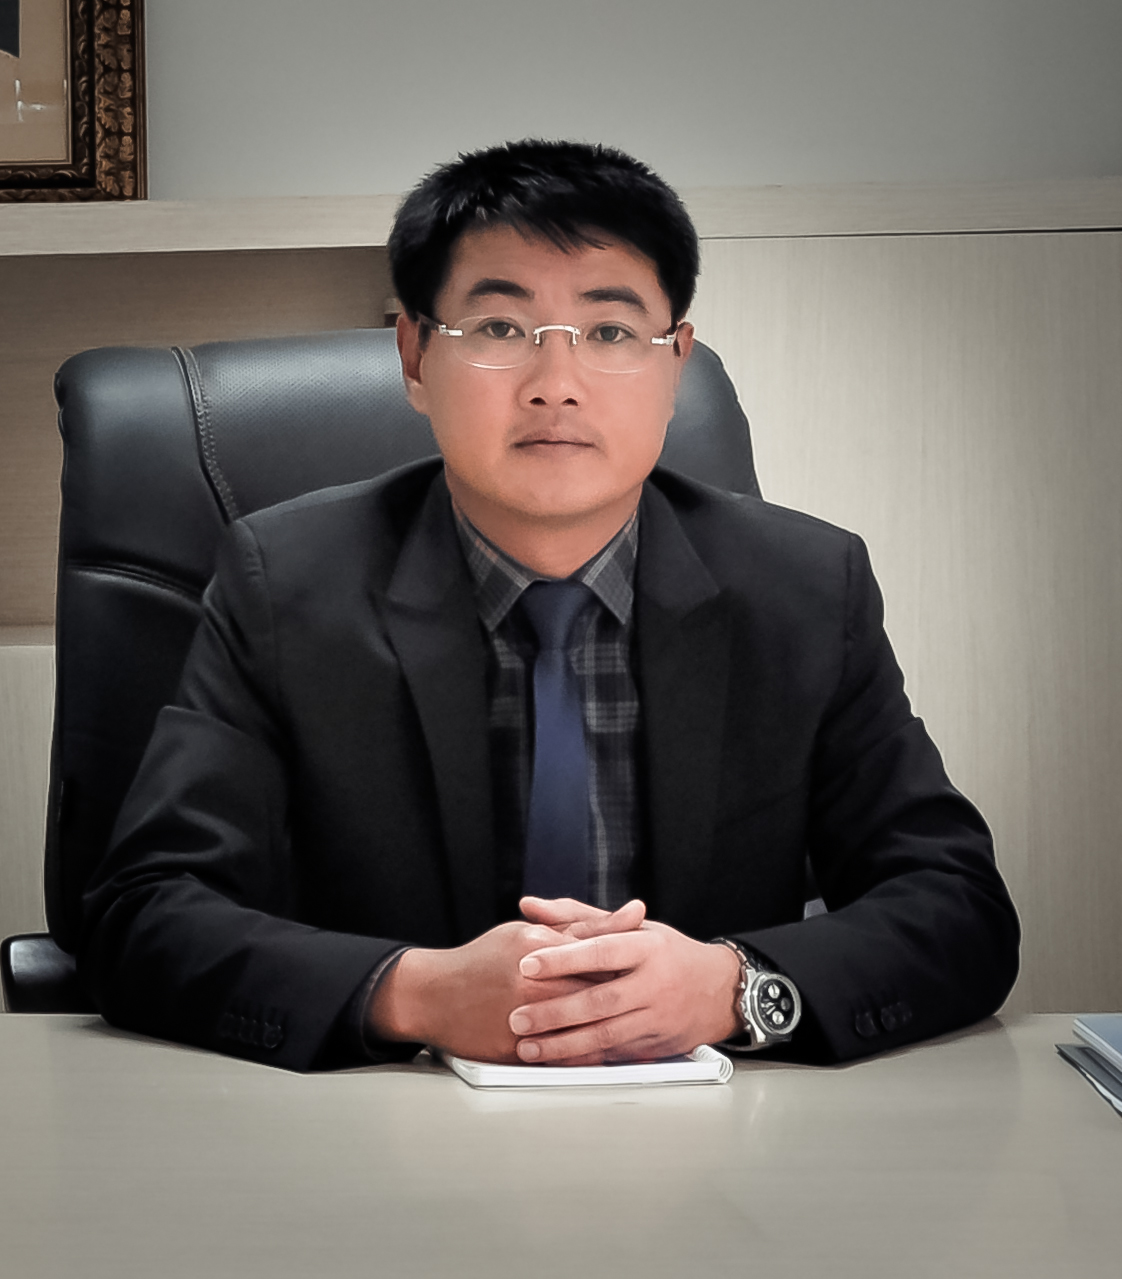 Mr. Hoang Anh Chien